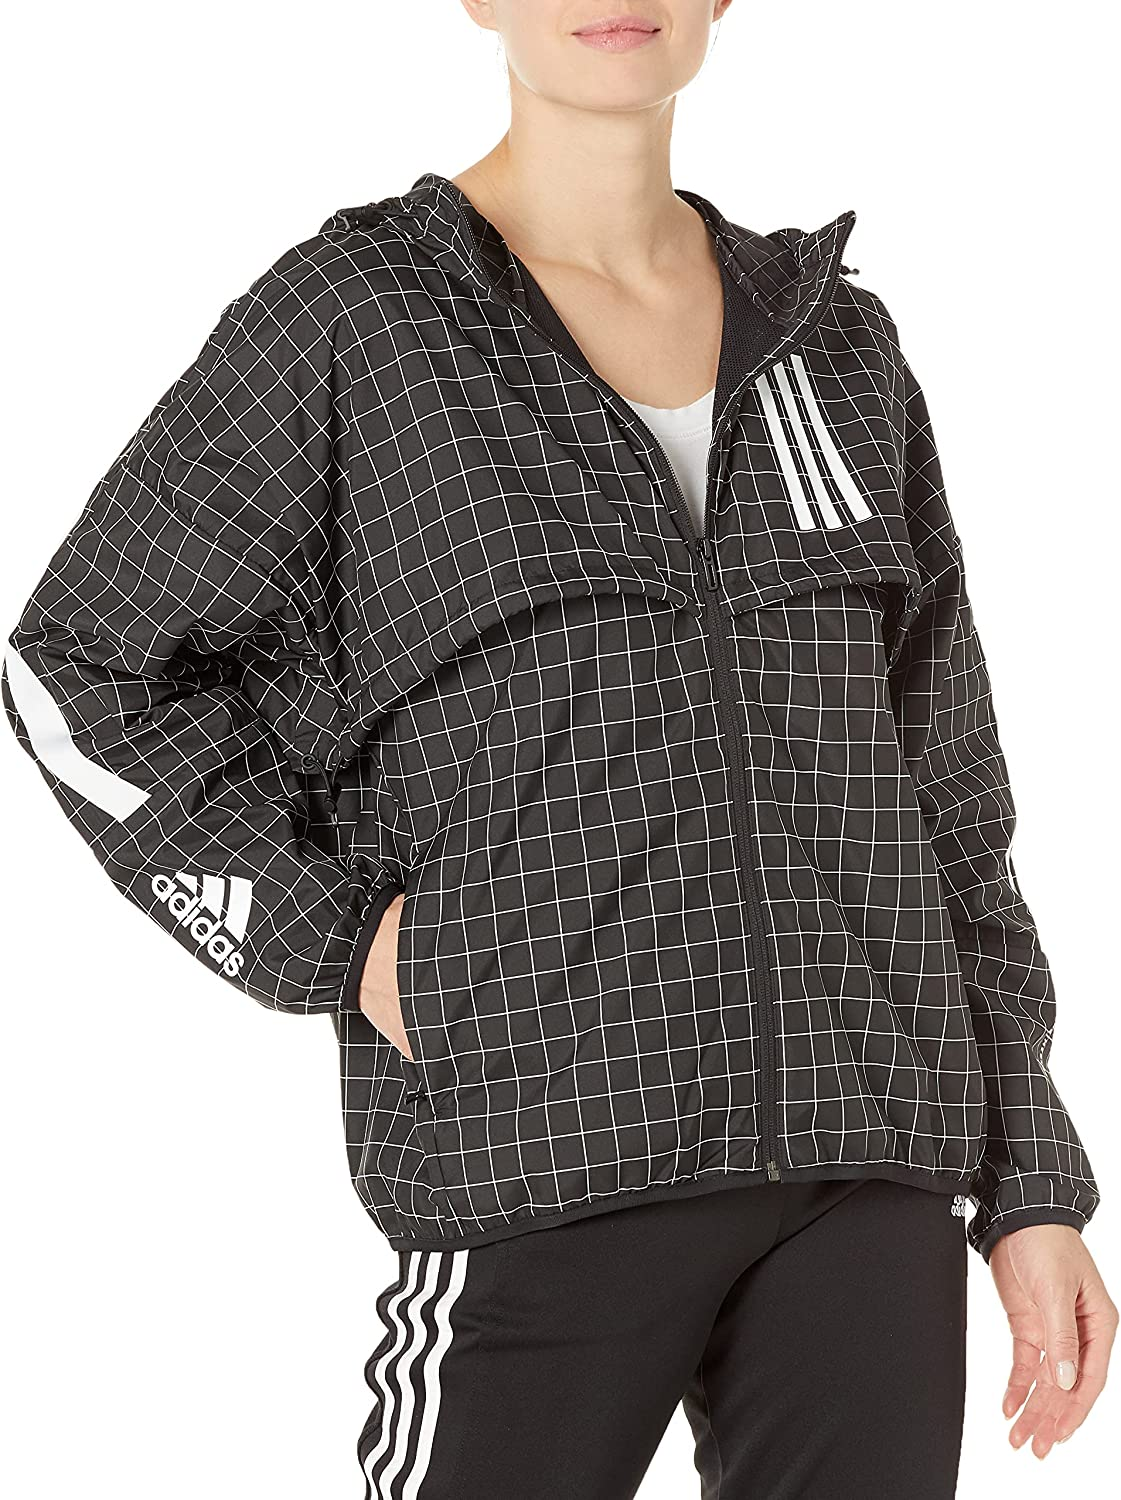 Be super welcome adidas Women's Jacket Sale Special Price W.n.d.